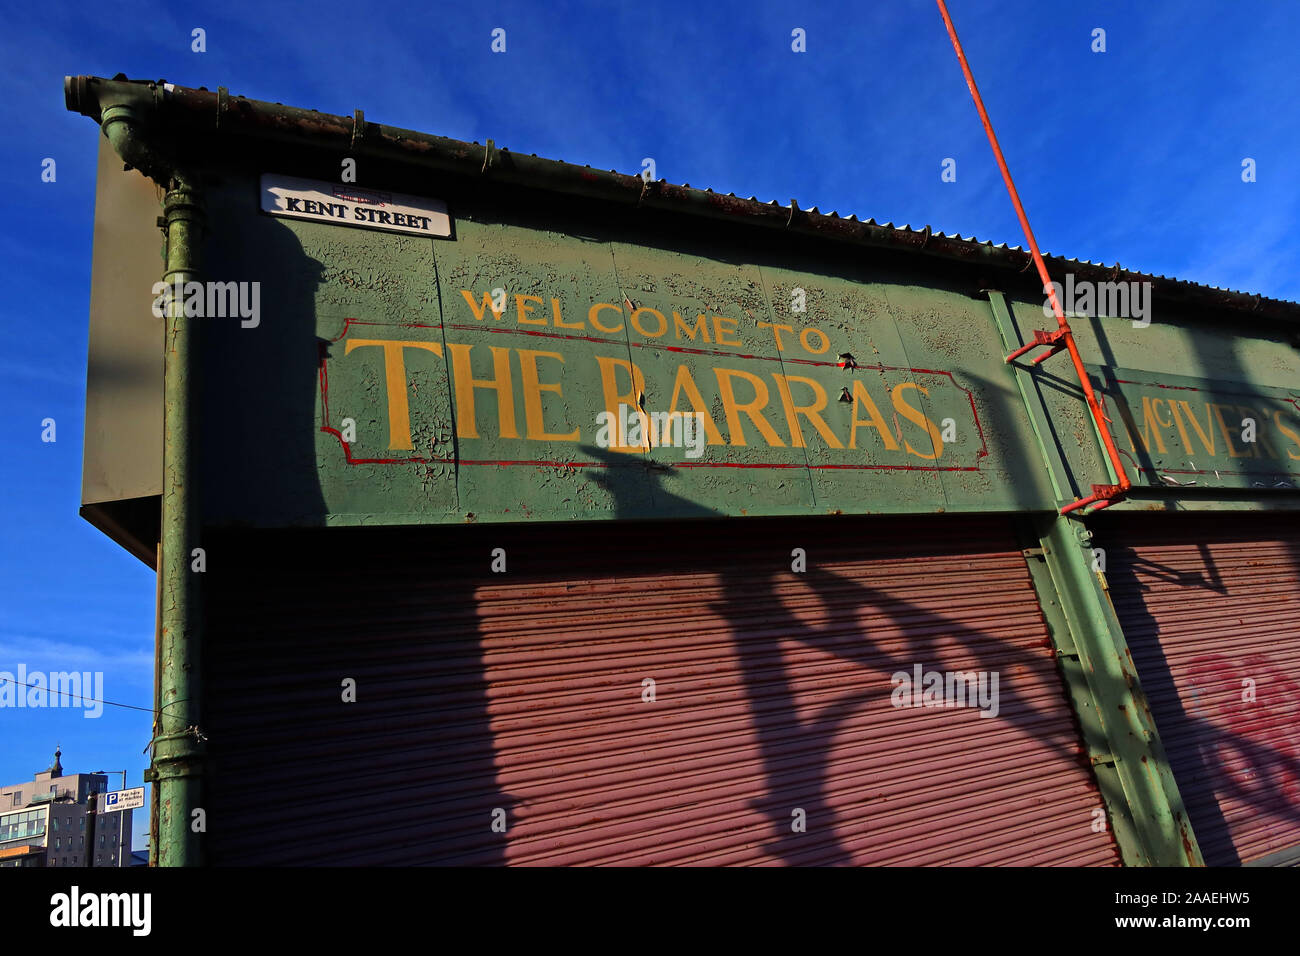 GotonySmith,UK,Scotland,city,city centre,HotpixUK,@HotpixUK,stall,G1 5DX,Calton,G1,The Barras,East End,signs,seedy,Glaswegian,covered markets,notorious,Glasgow,green sign,green,signage,Welcome To The Barras,Welcome To Glasgow,Glasgow Barrowland market